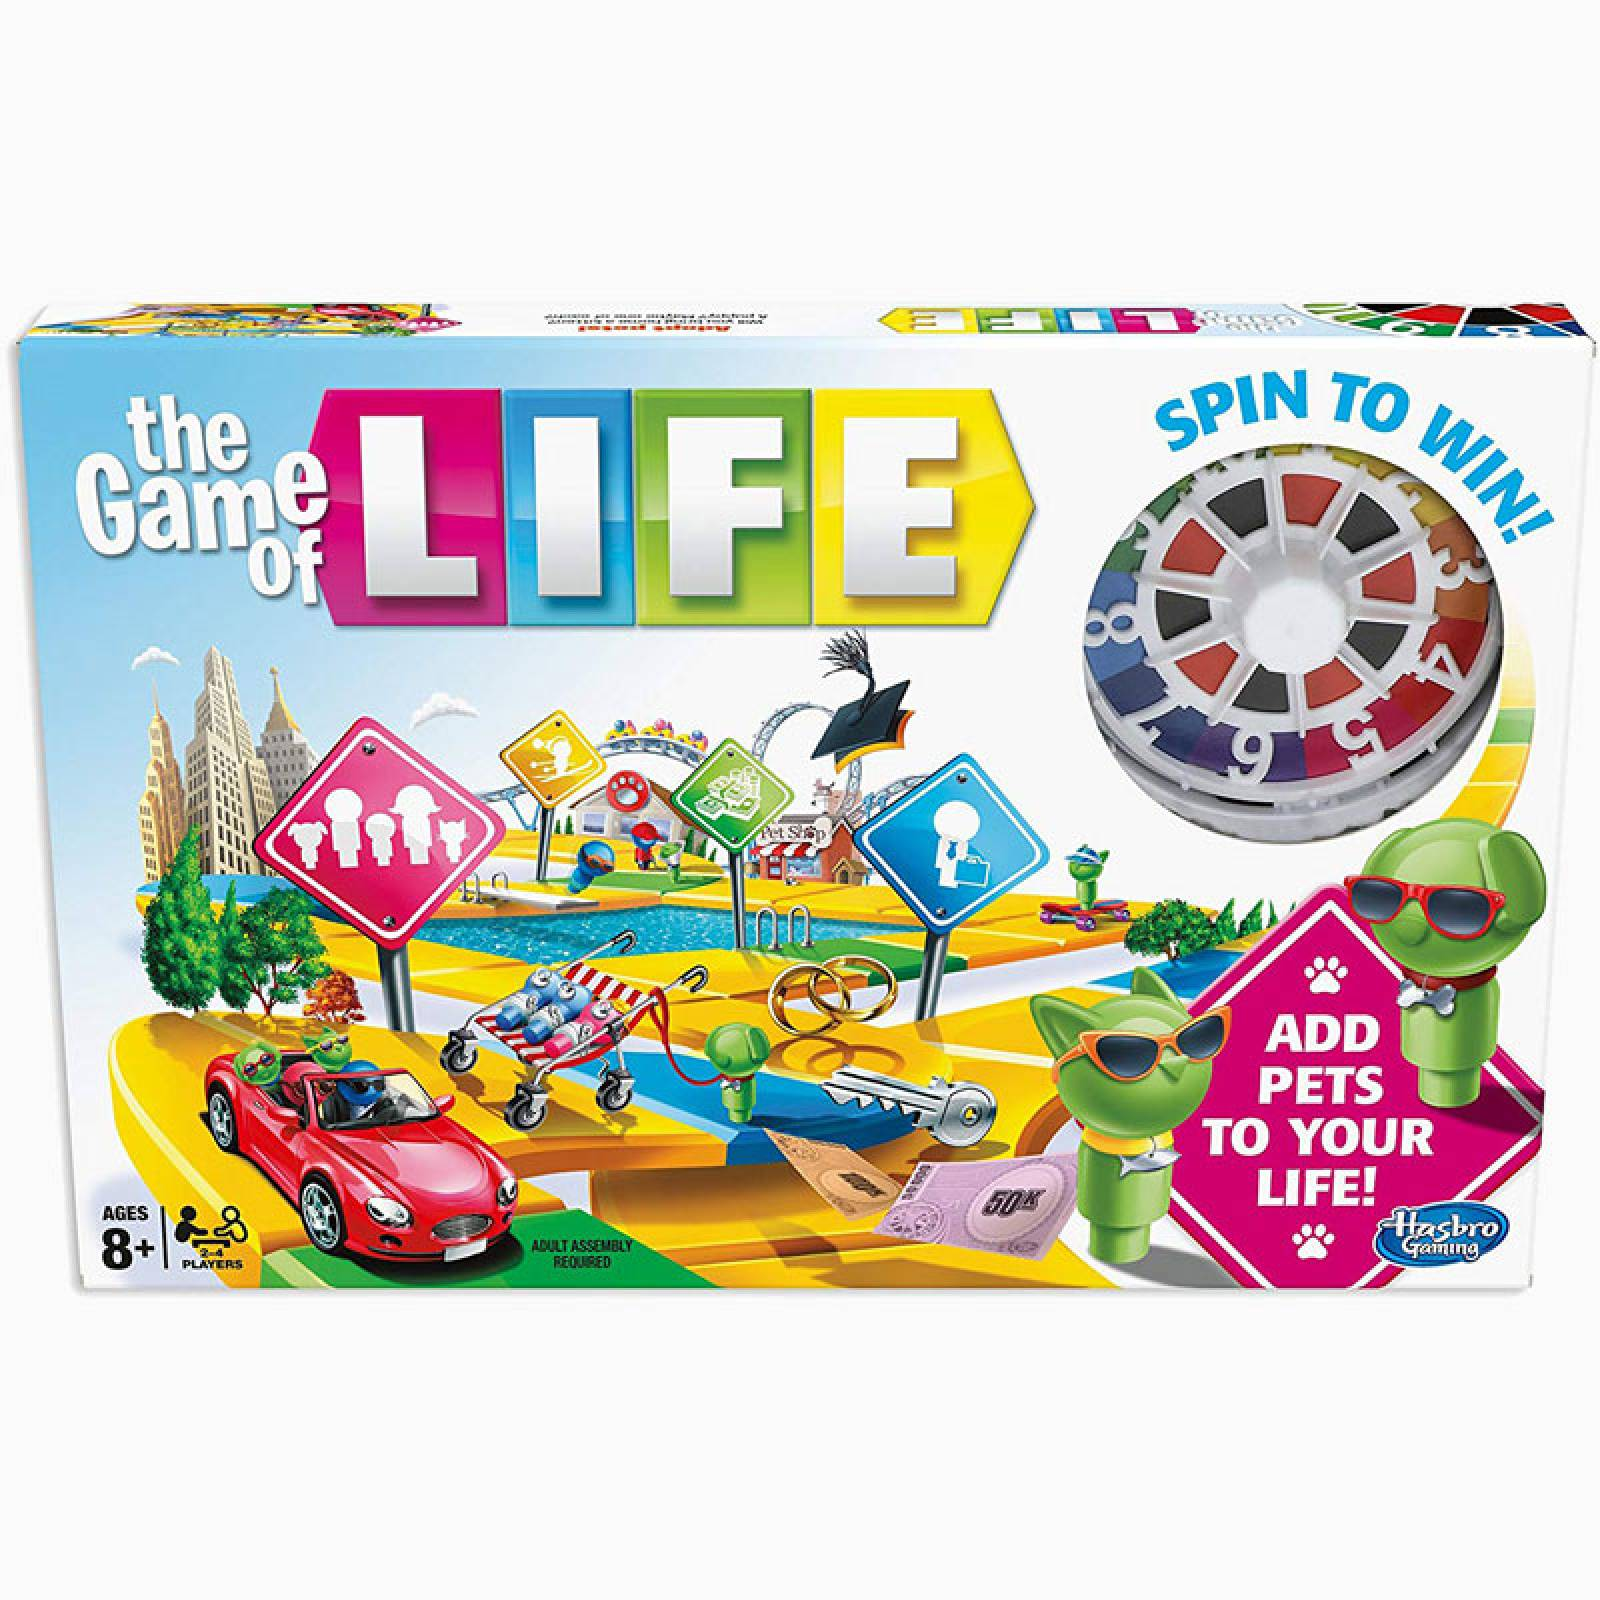 The Game Of Life 8+